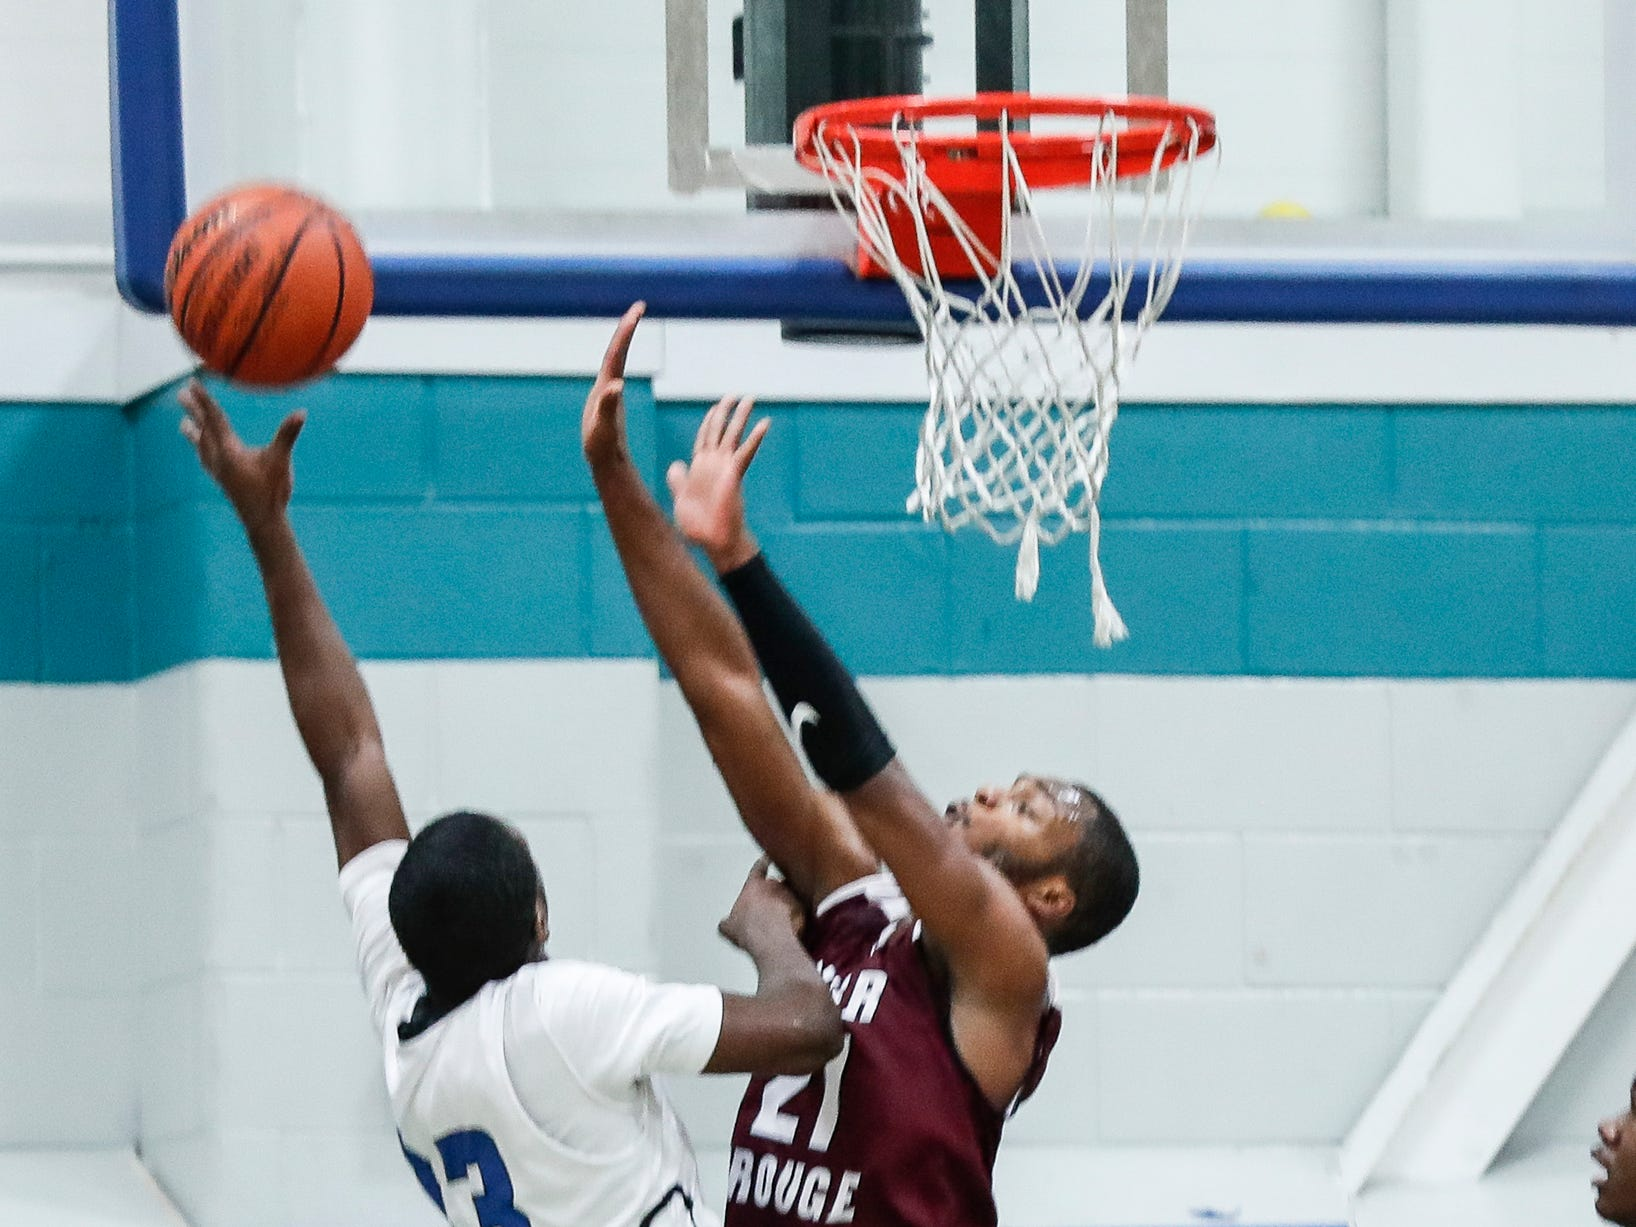 River Rouge Nigel Colvin (21) tries to block a layup by Henry Ford Academy: School for Creative Studies Joshua Wilson (13) during first half at the A. Alfred Taubman Center For Design Education in Detroit, Tuesday, Jan. 8, 2019.